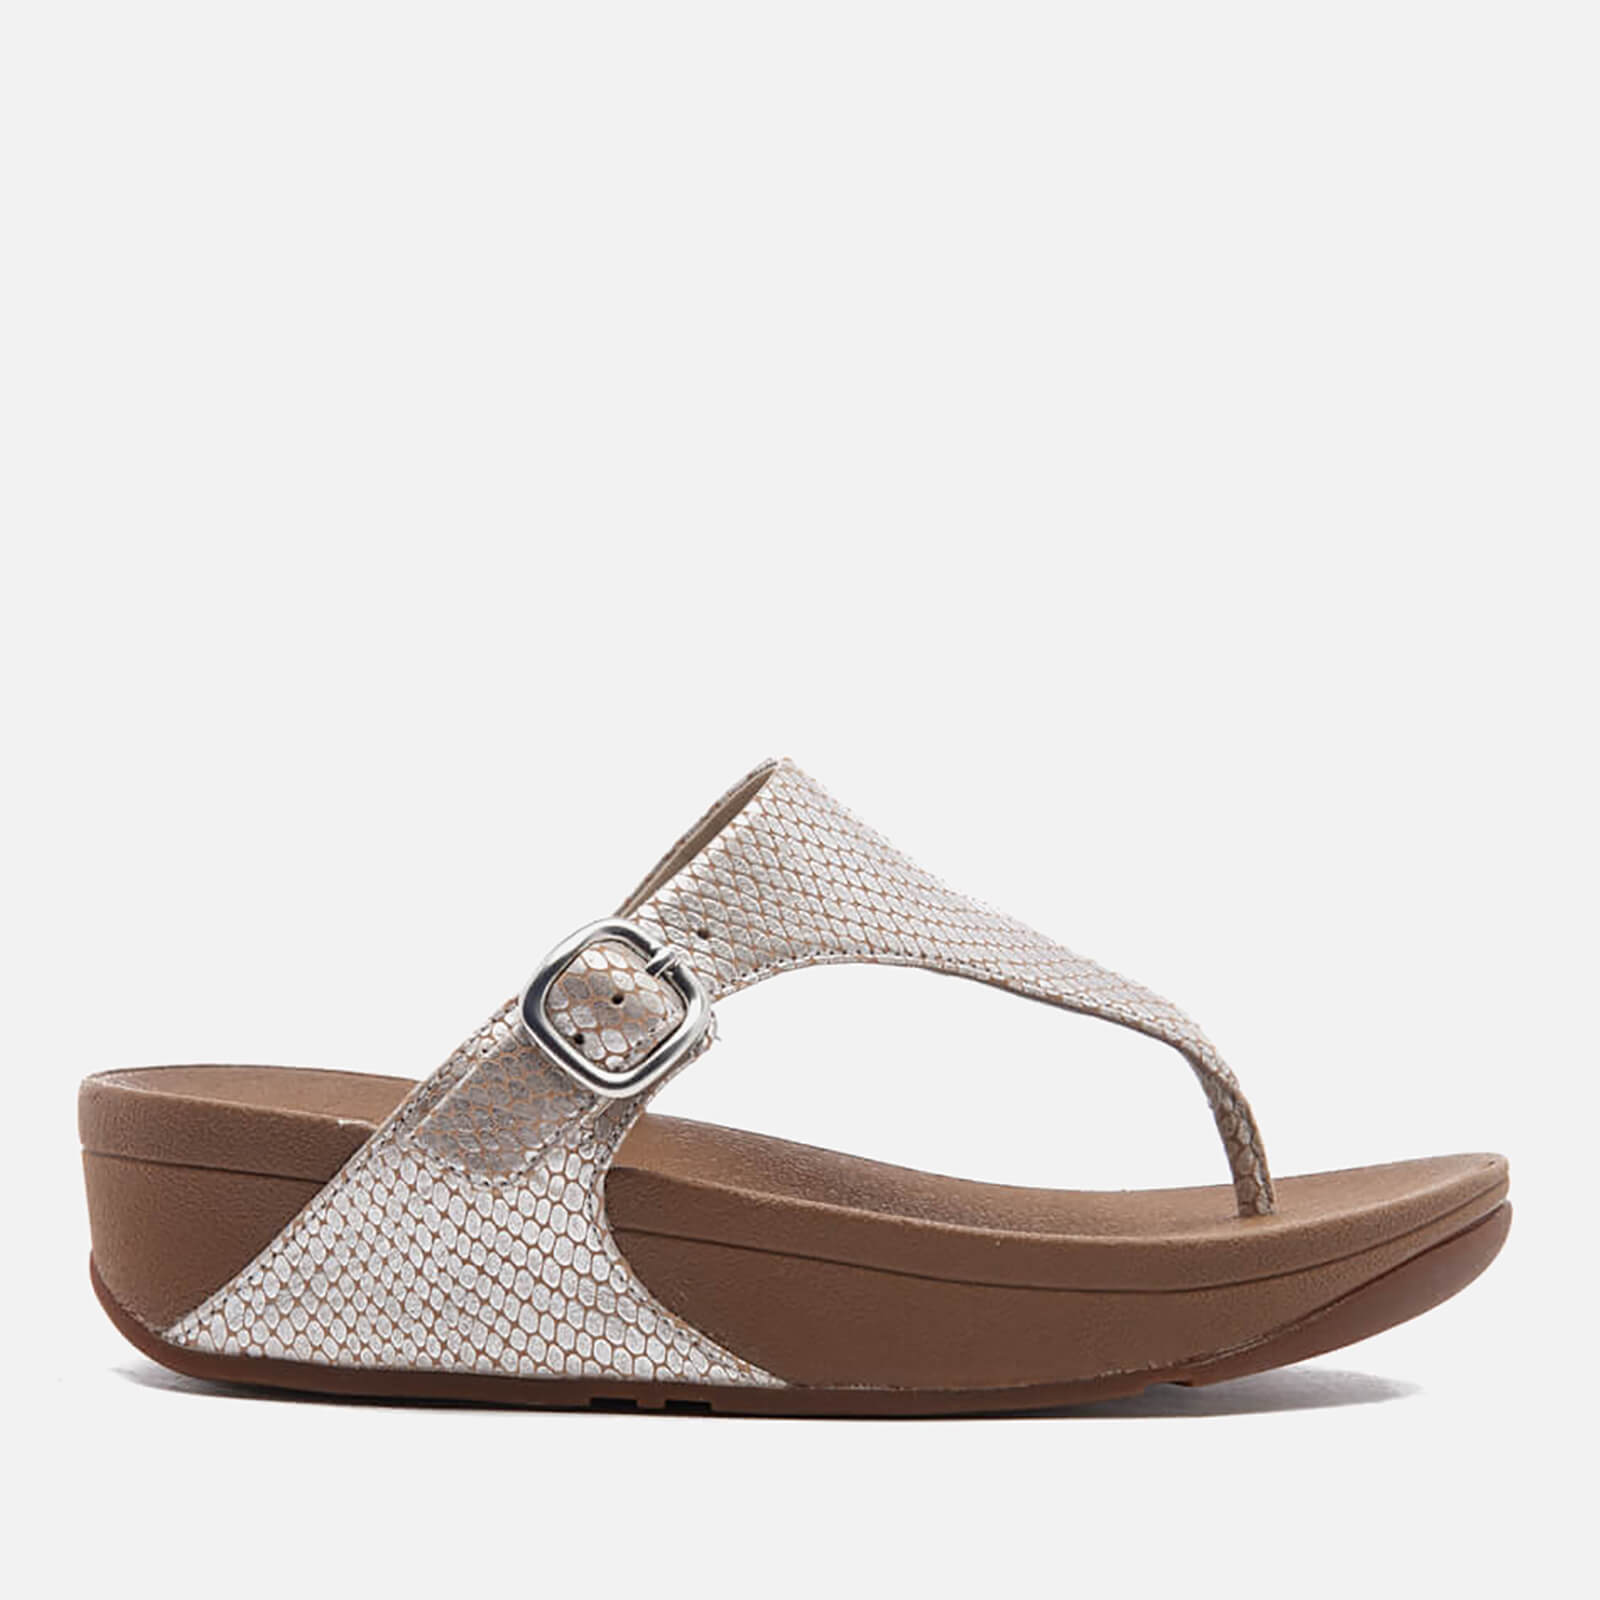 658eeff3b FitFlop Women s The Skinny Leather Toe-Post Sandals - Silver Snake Womens  Accessories